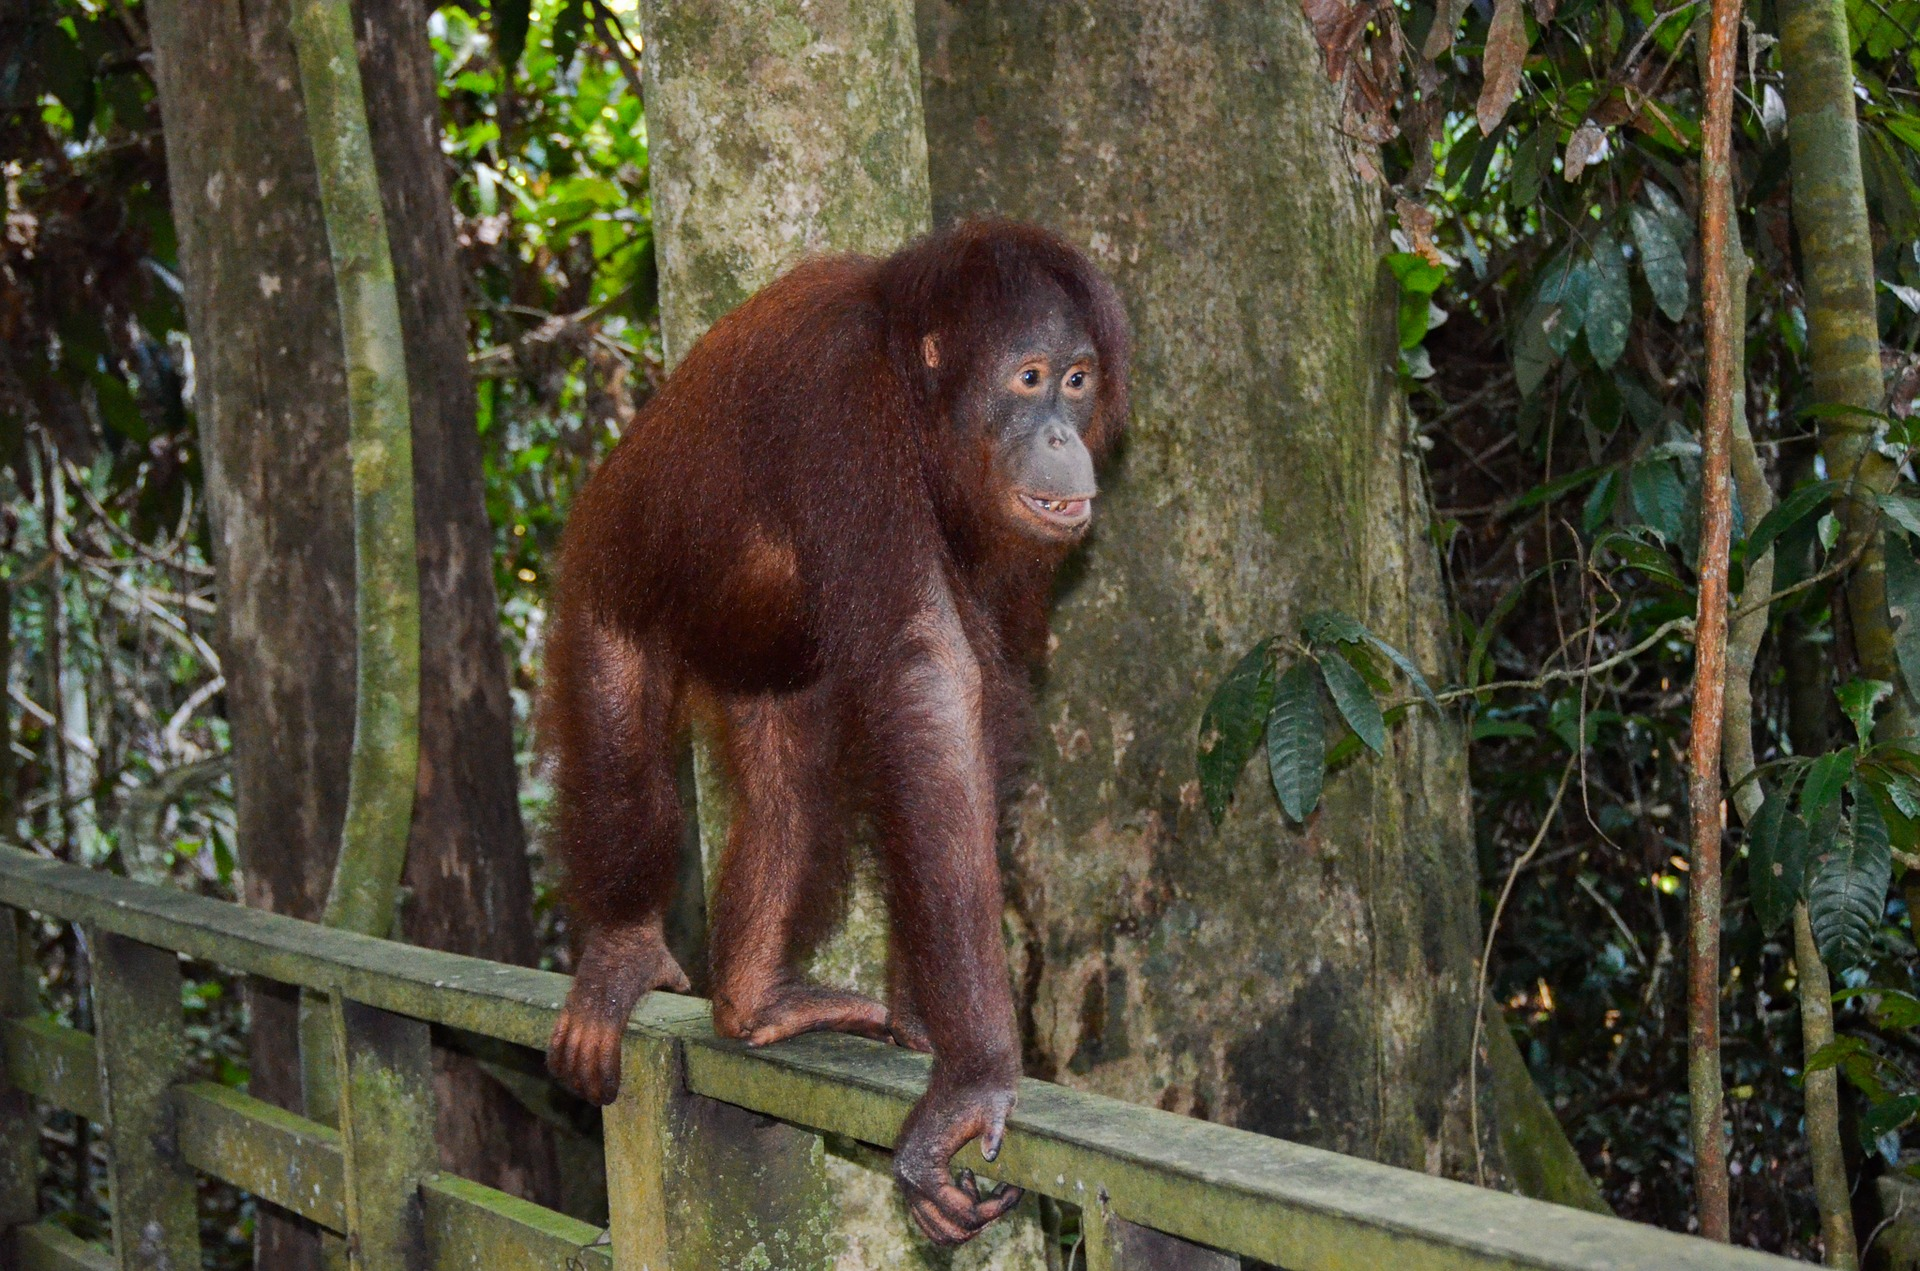 Orangutan (great red ape) in Borneo